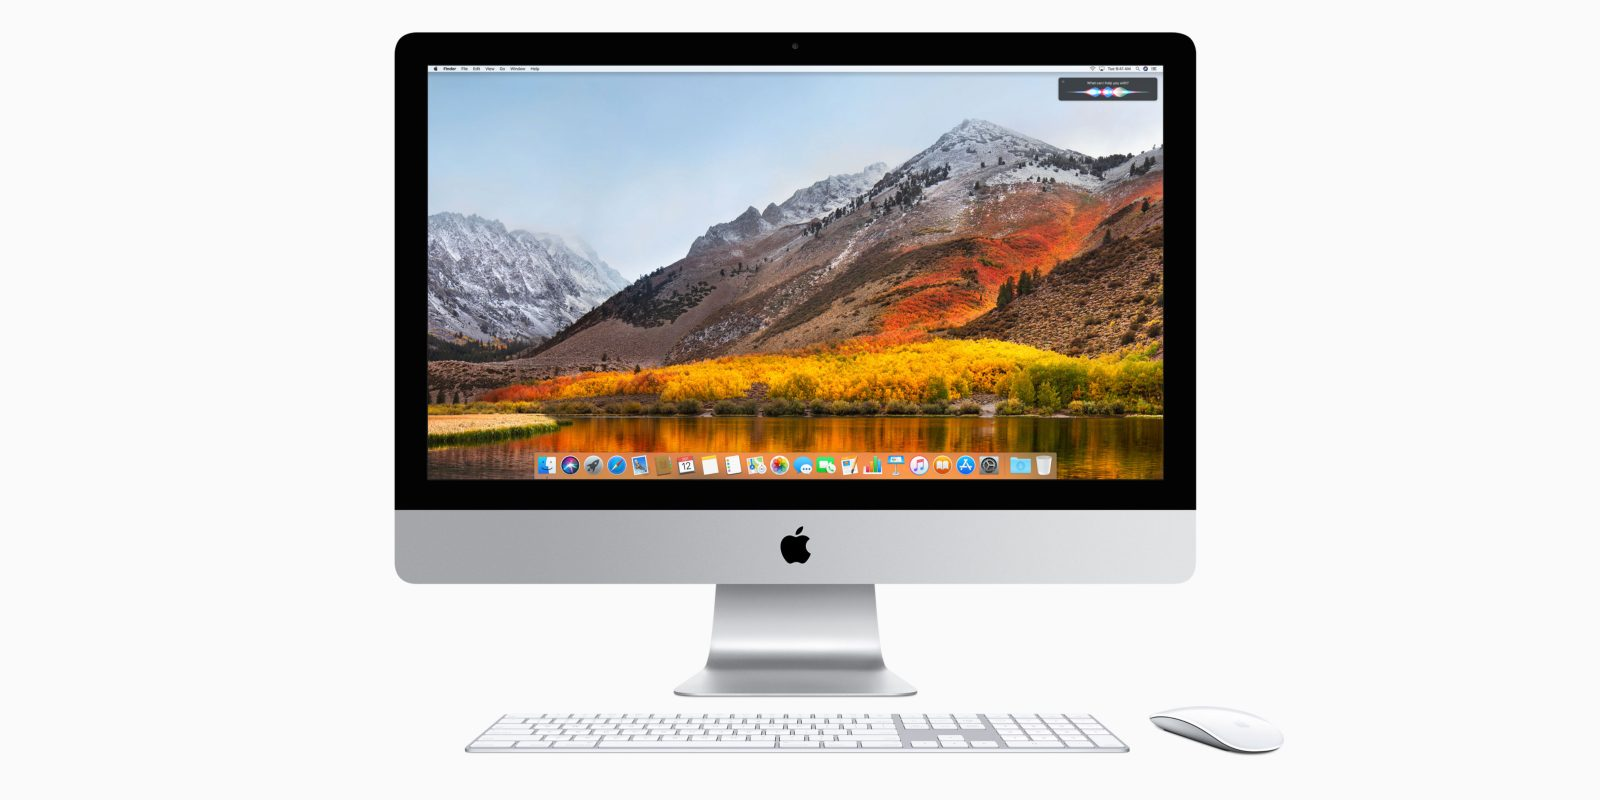 This all-time low on Apple's 4K Retina iMac delivers solid value at $899